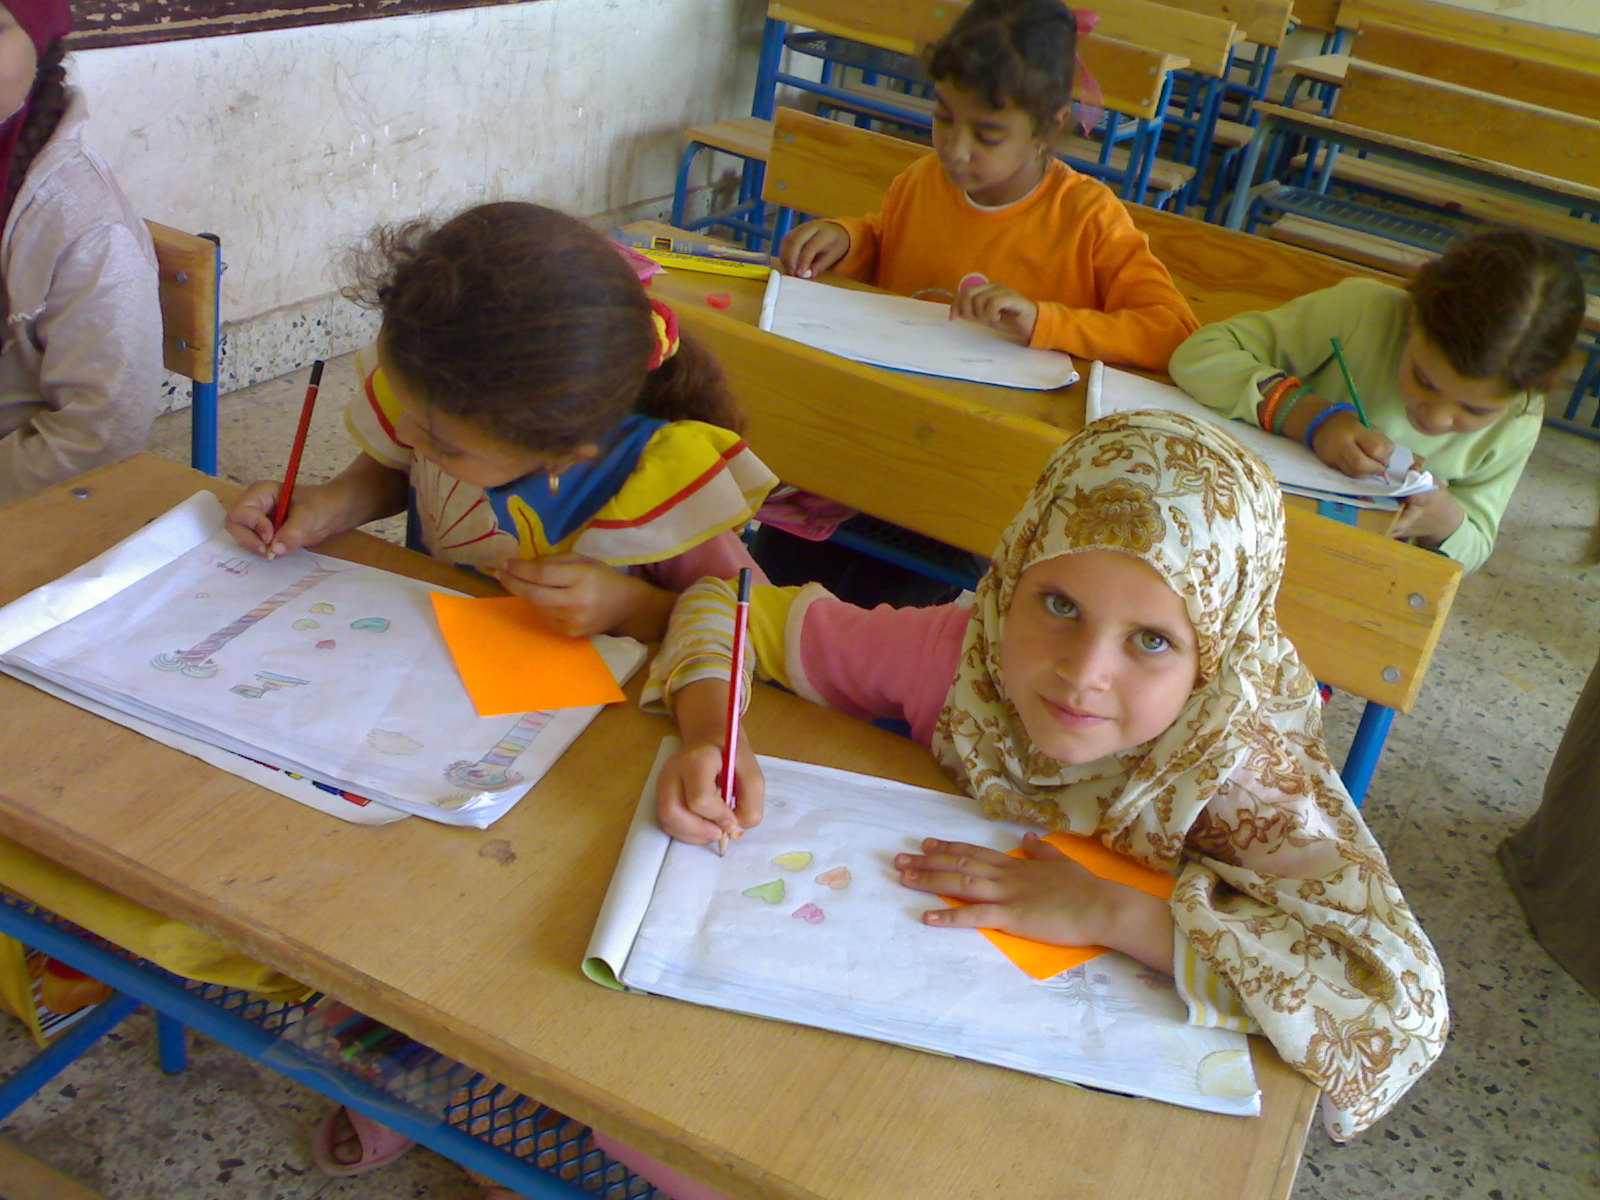 Students taking part in art activities in a public school in Egypt. Credit: World Education Staff.